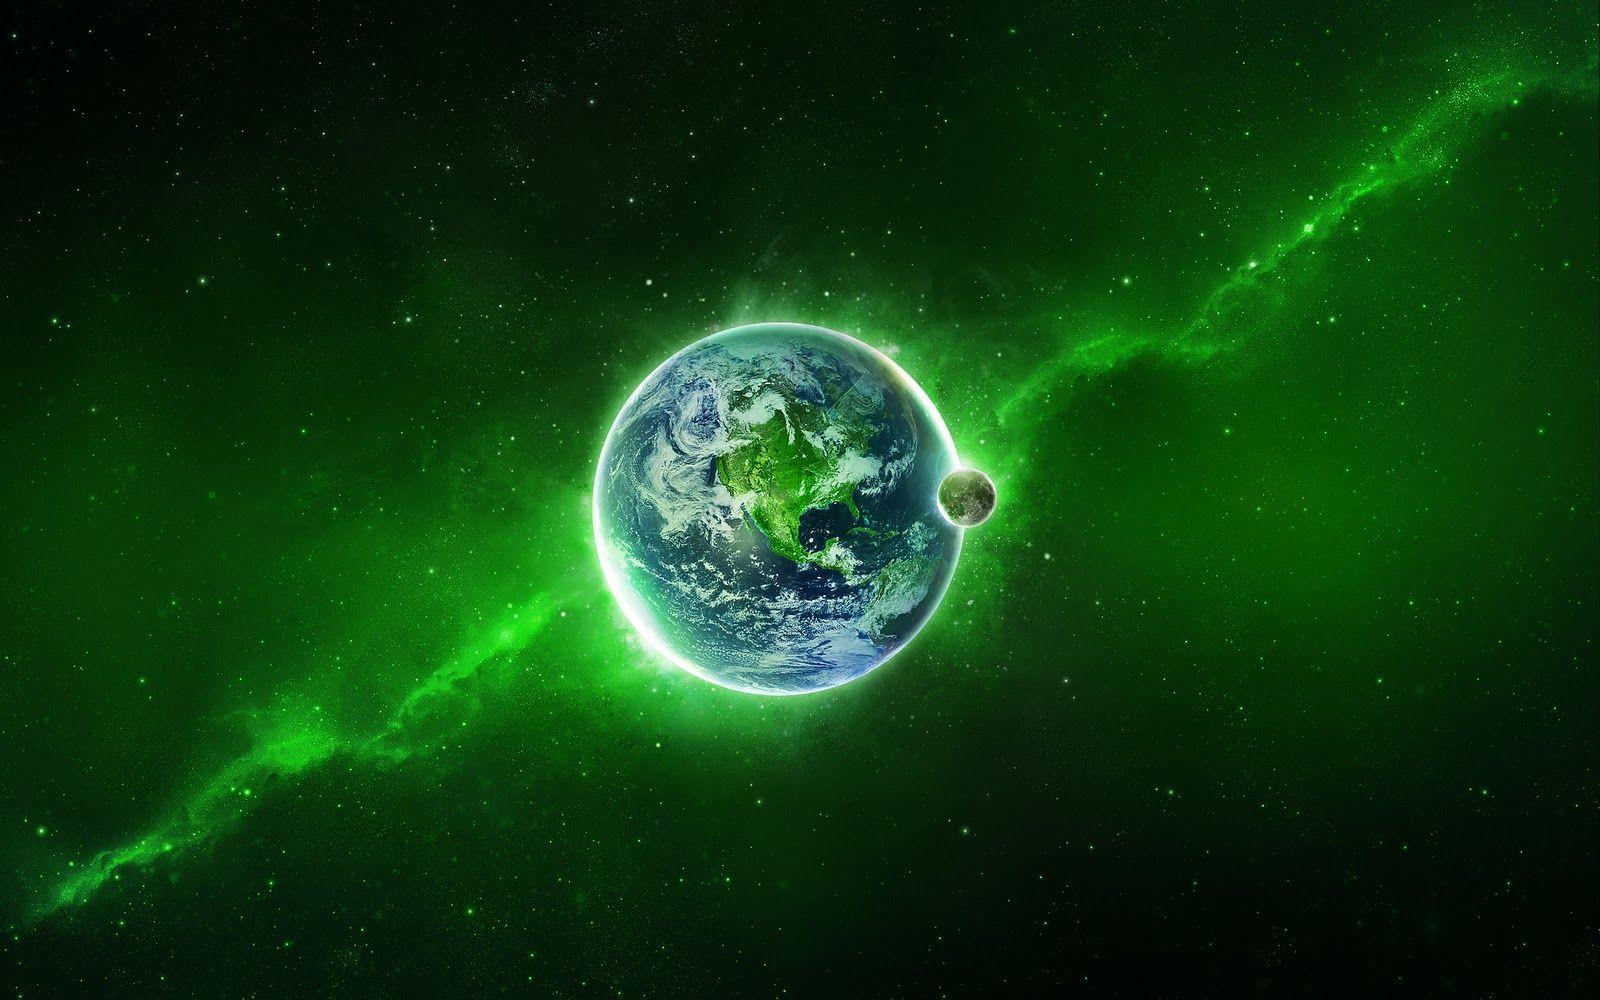 Green Space Wallpapers Wallpaper Cave